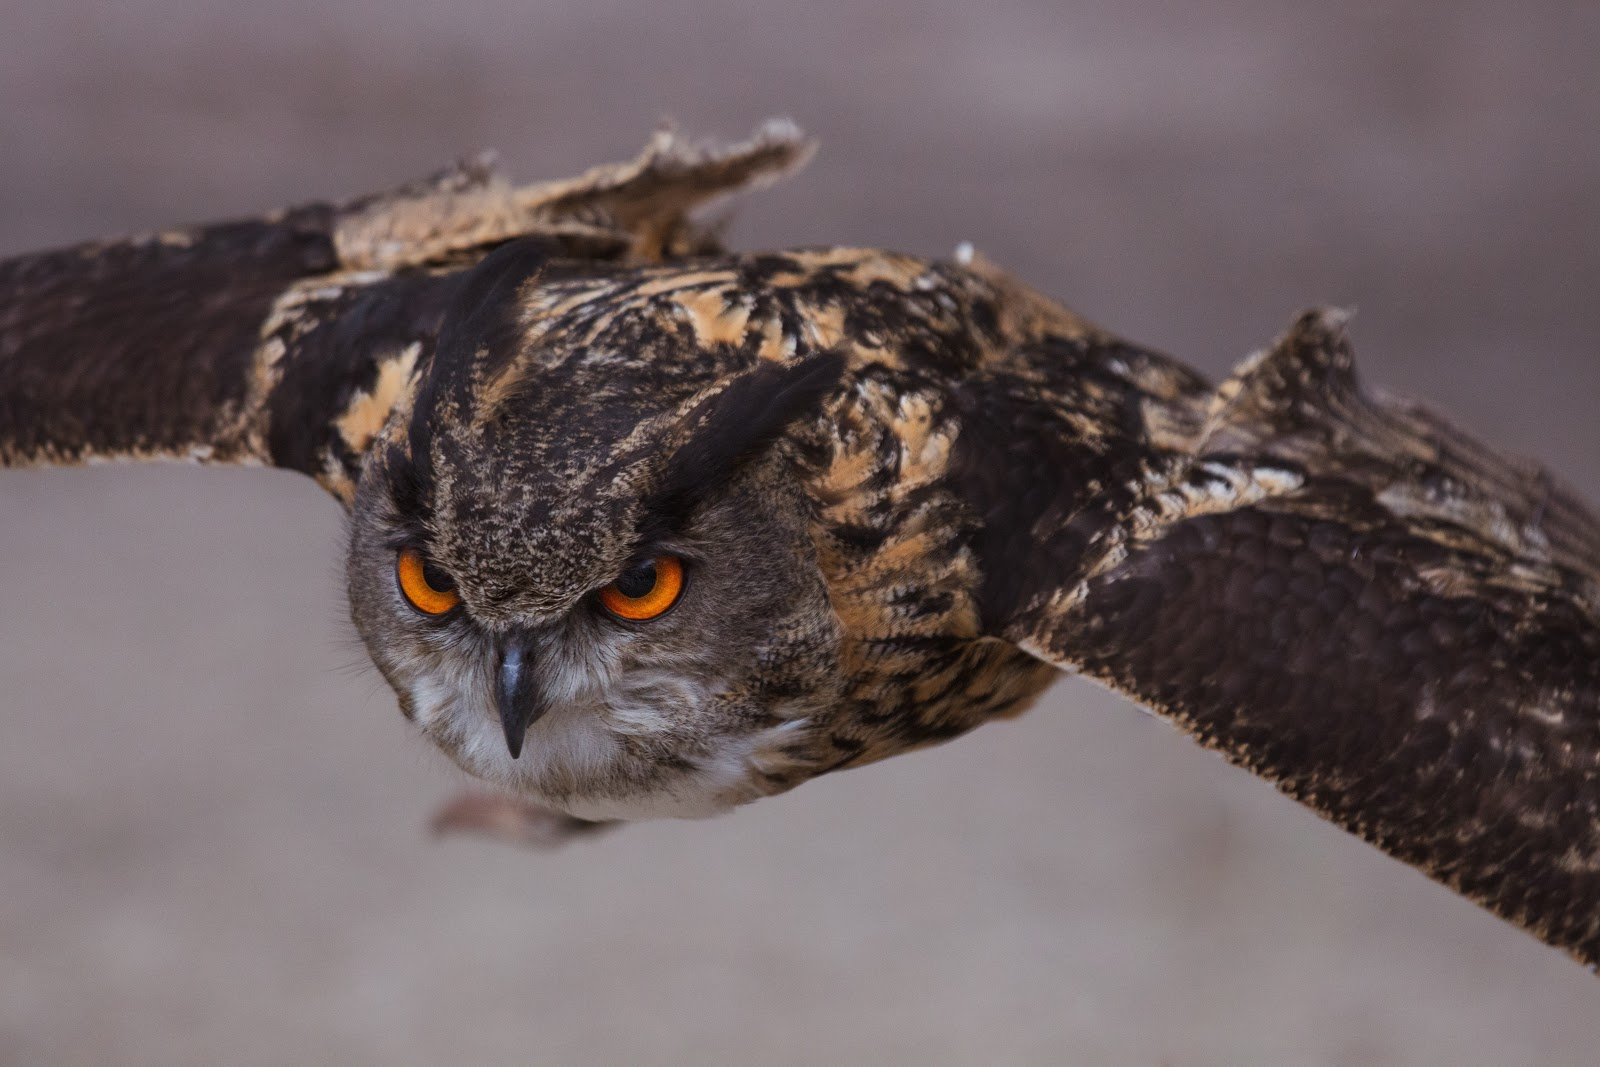 close-up-shot-it-an-owl-bird-pictures